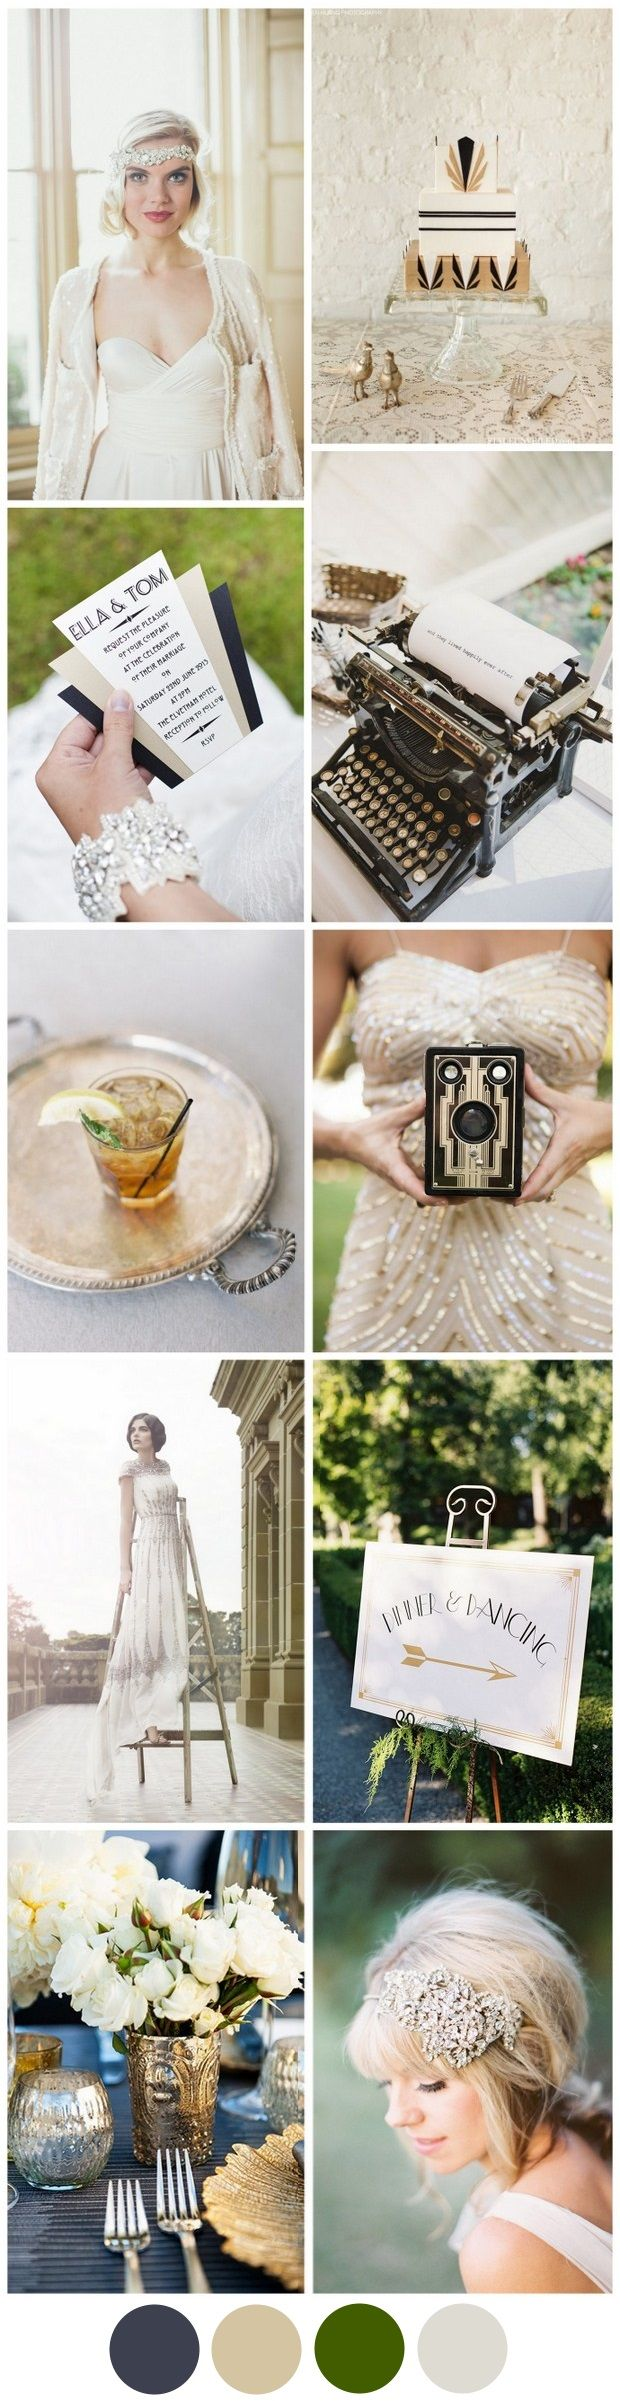 Get set for all things opulent with this gorgeous Gatsby wedding palette full of awesome Art Deco ideas.